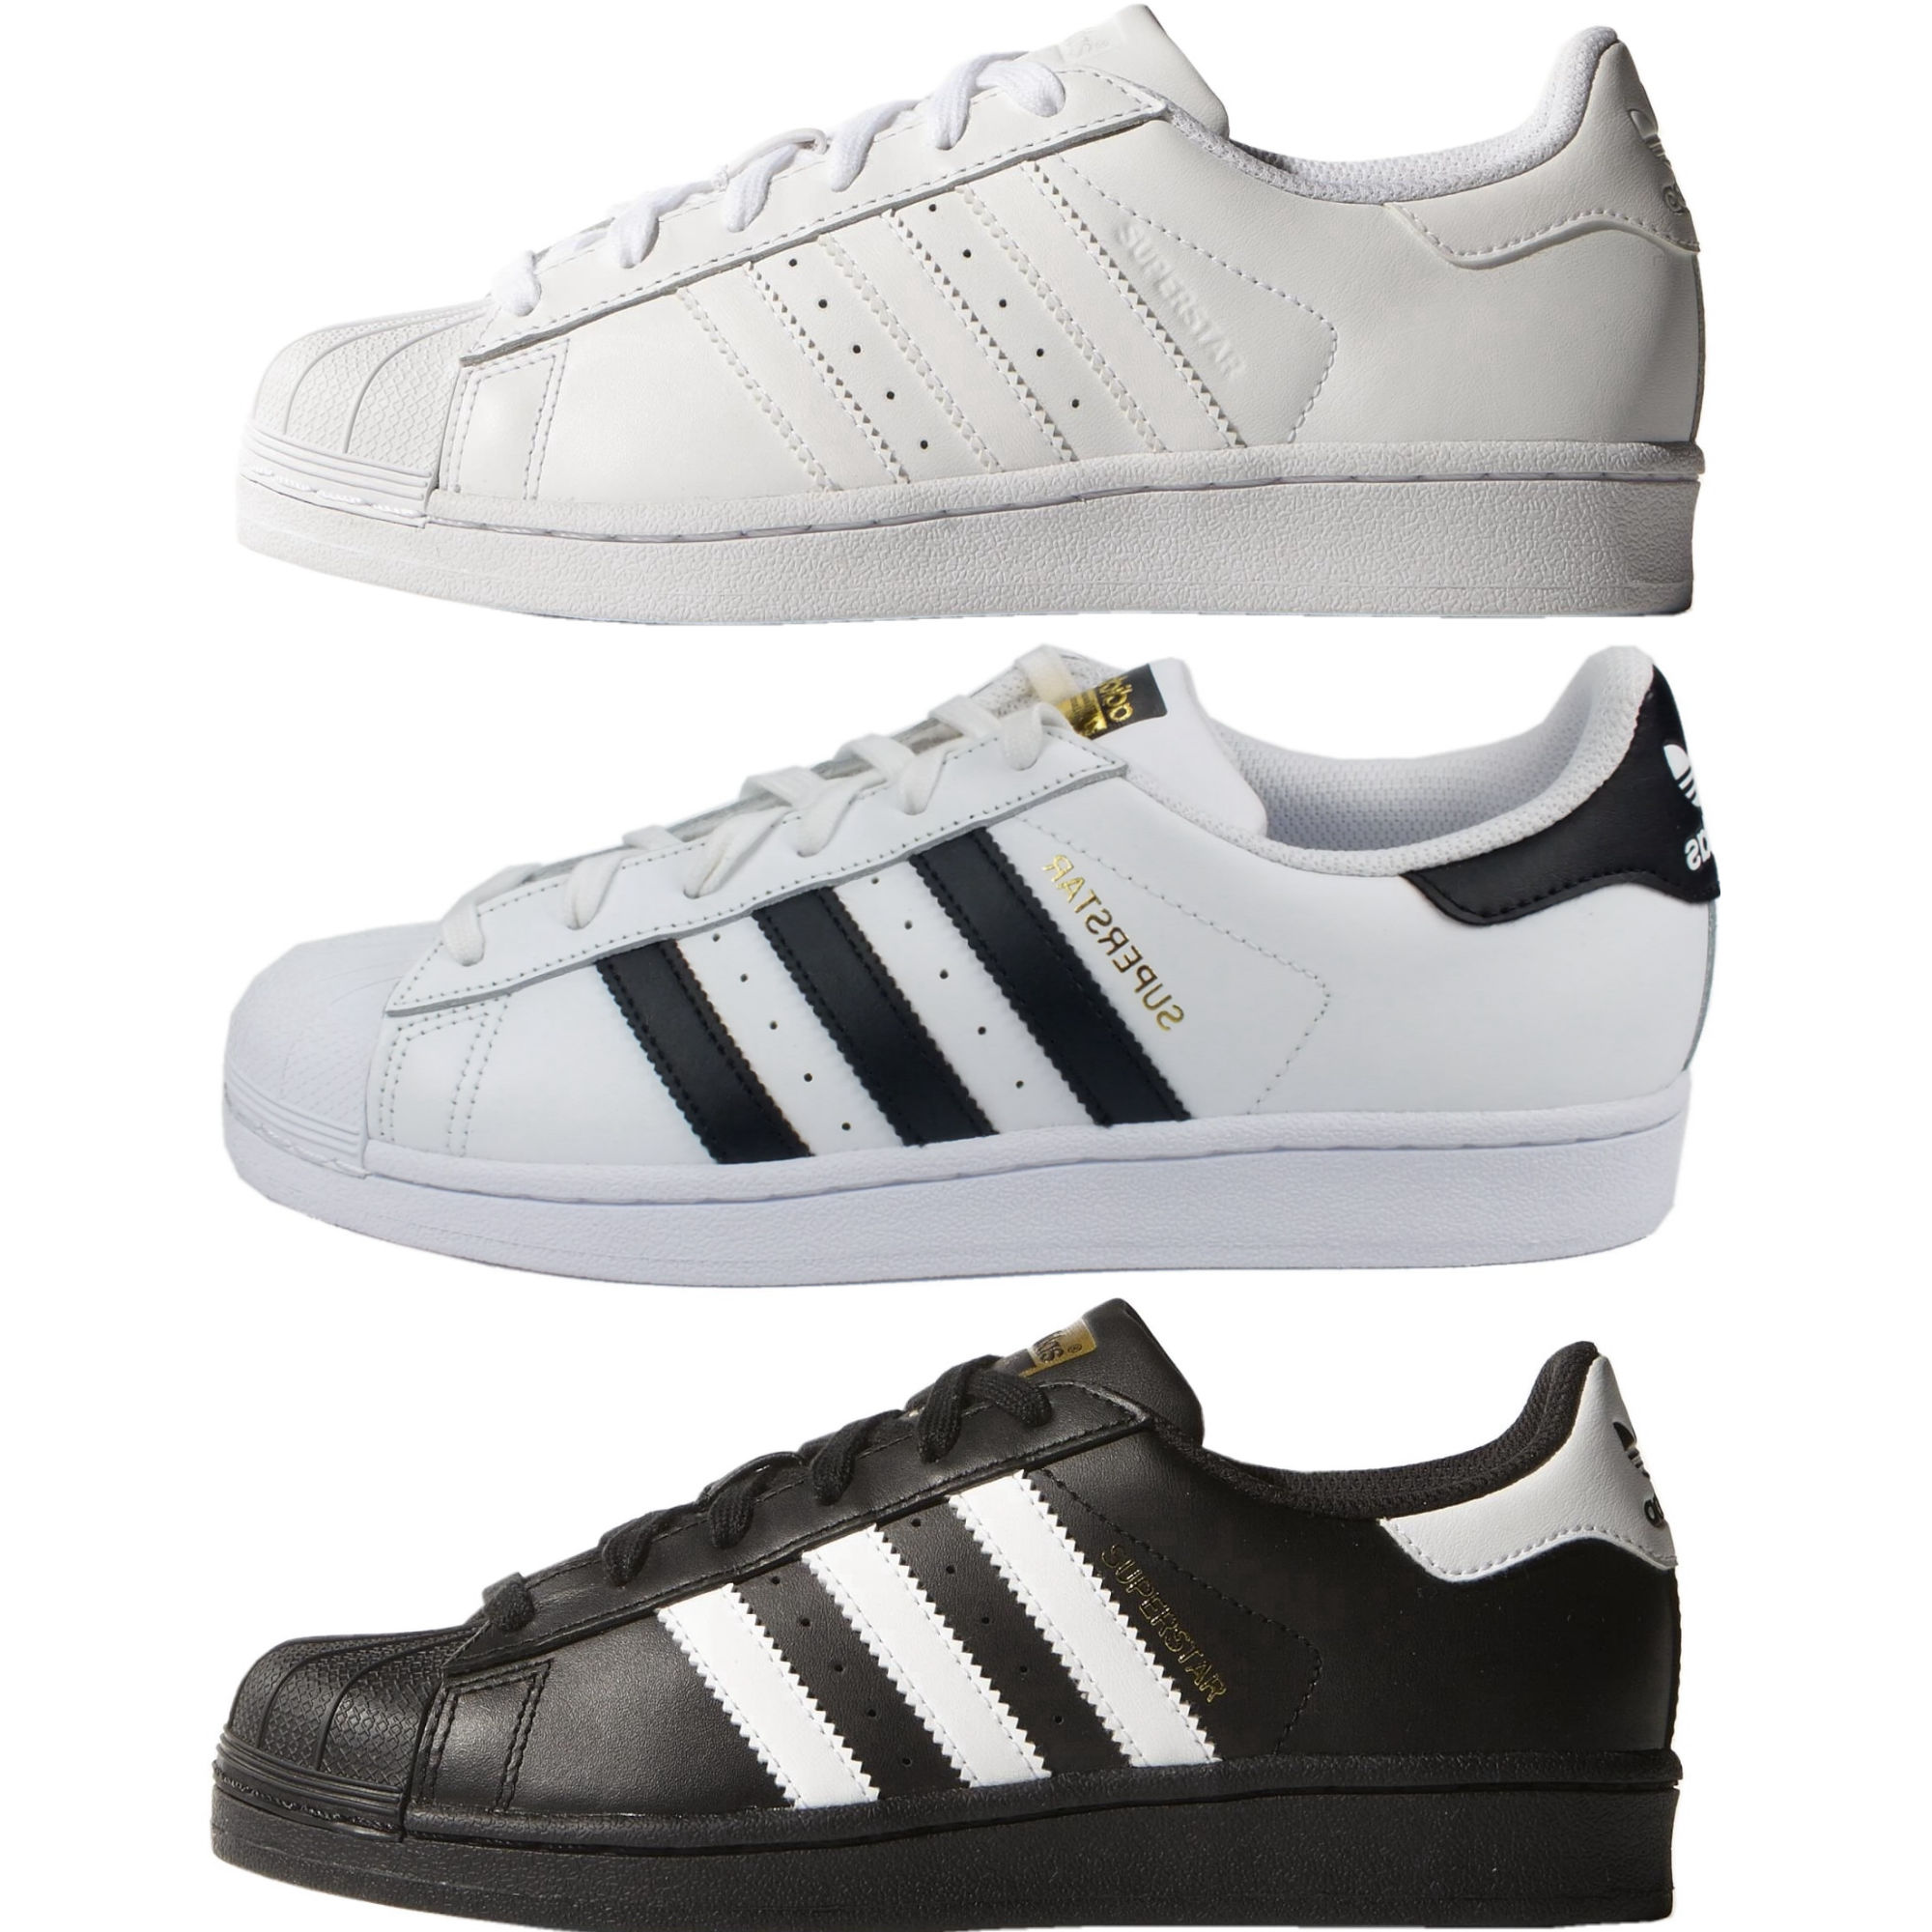 jah6jqi2 uk adidas schuhe m dchen. Black Bedroom Furniture Sets. Home Design Ideas